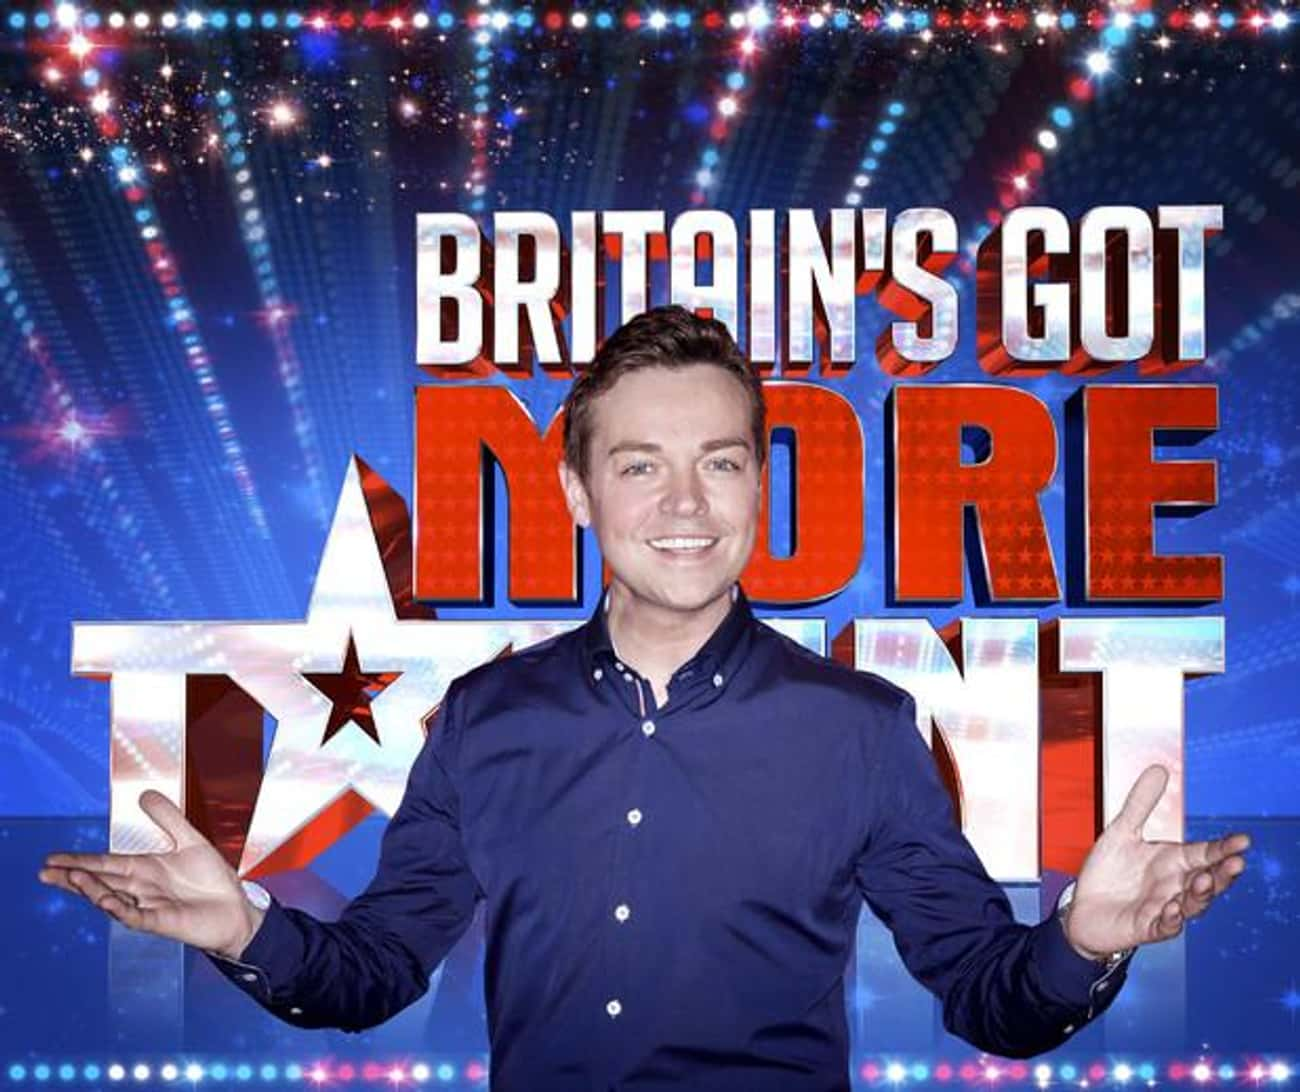 Britain's Got More Talent is listed (or ranked) 2 on the list The Best Simon Cowell Shows